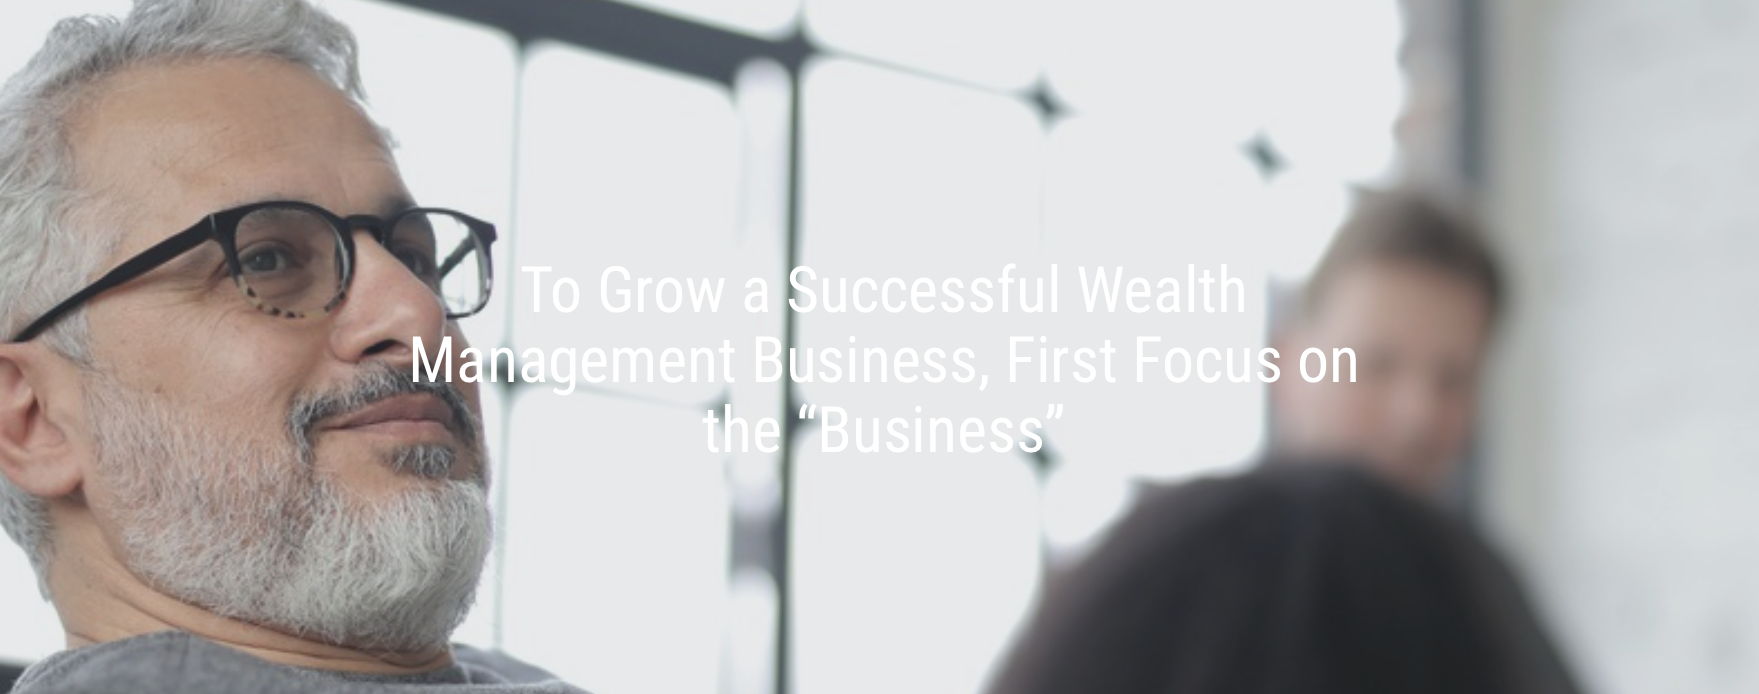 "To Grow a Successful Wealth Management Business, First Focus on the ""Business"" by Derek Bruton Thumbnail"